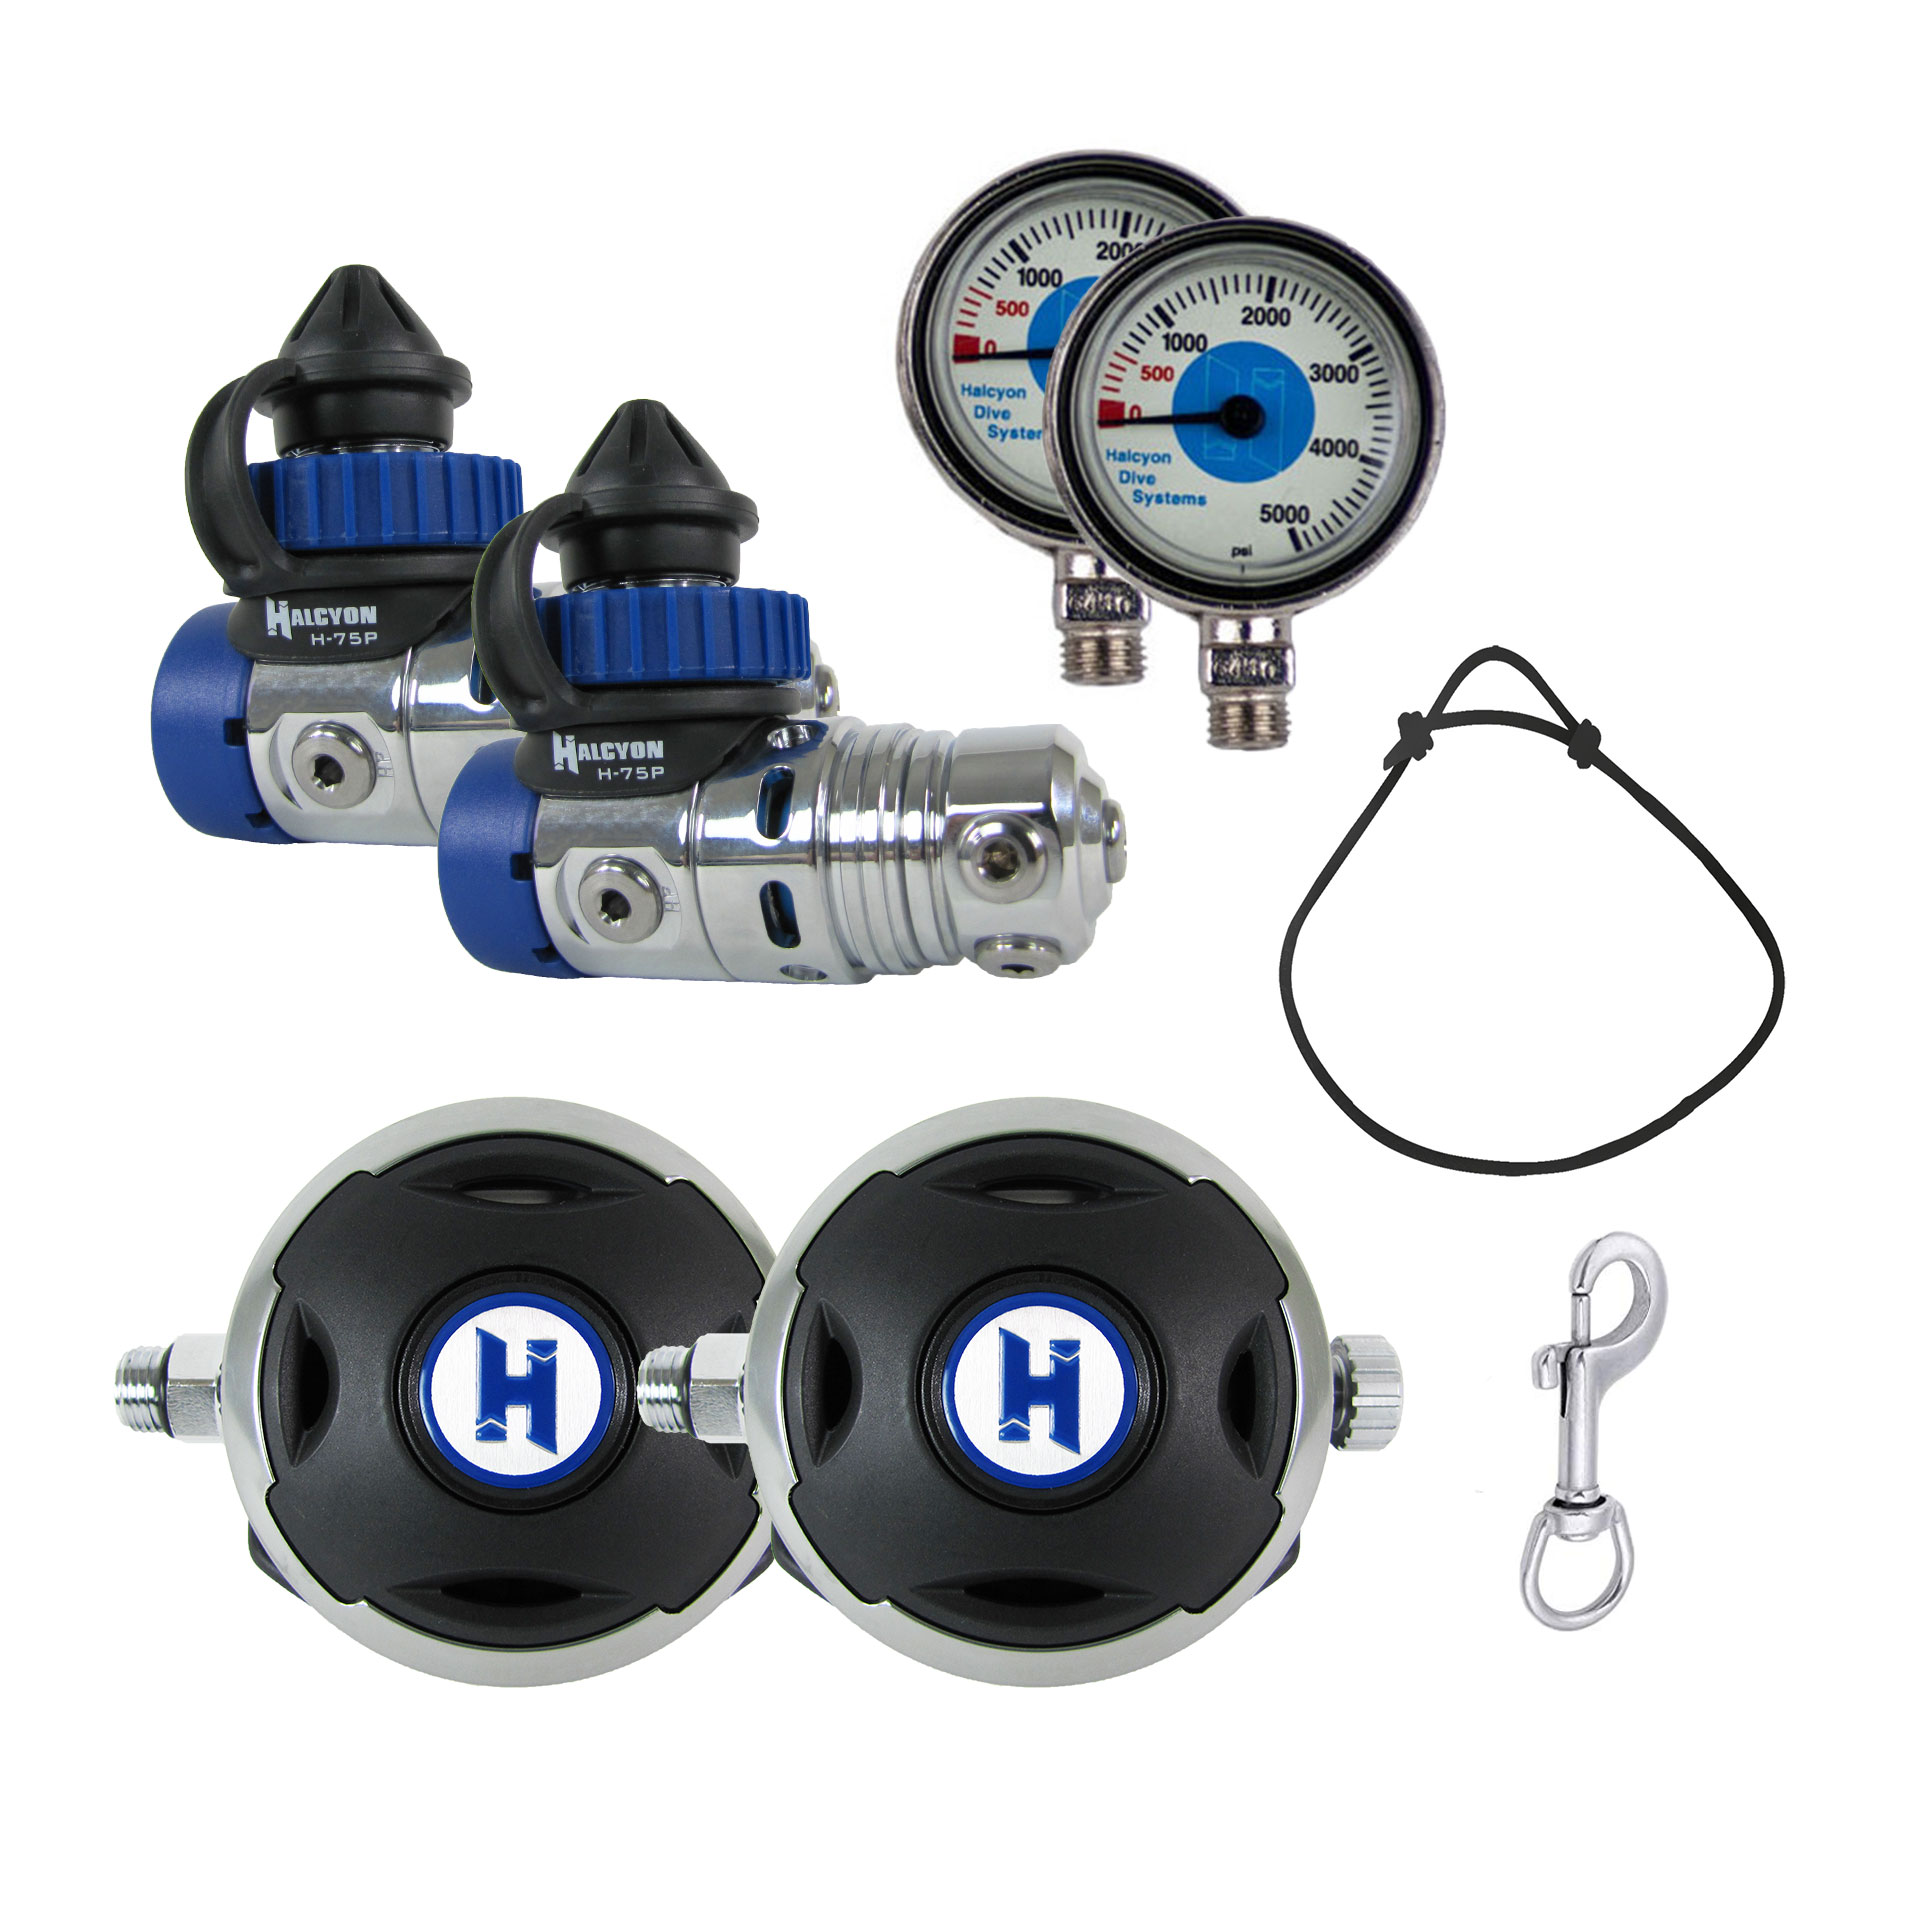 H-75P Sidemount Regulator Package